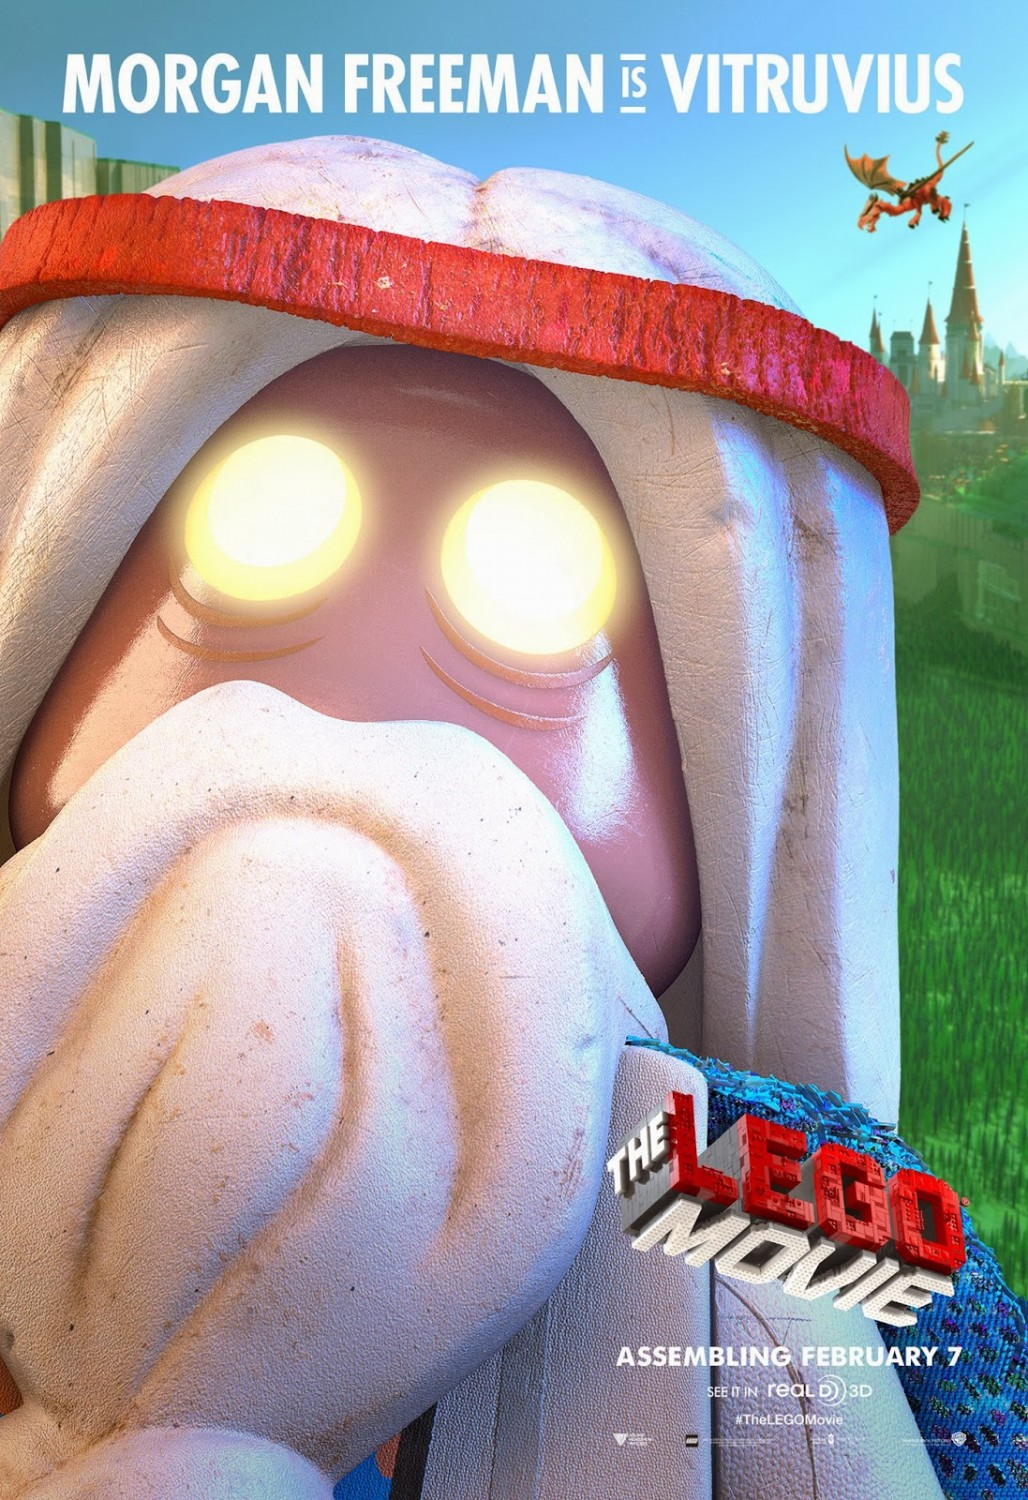 the lego movie character posters for morgan freeman and